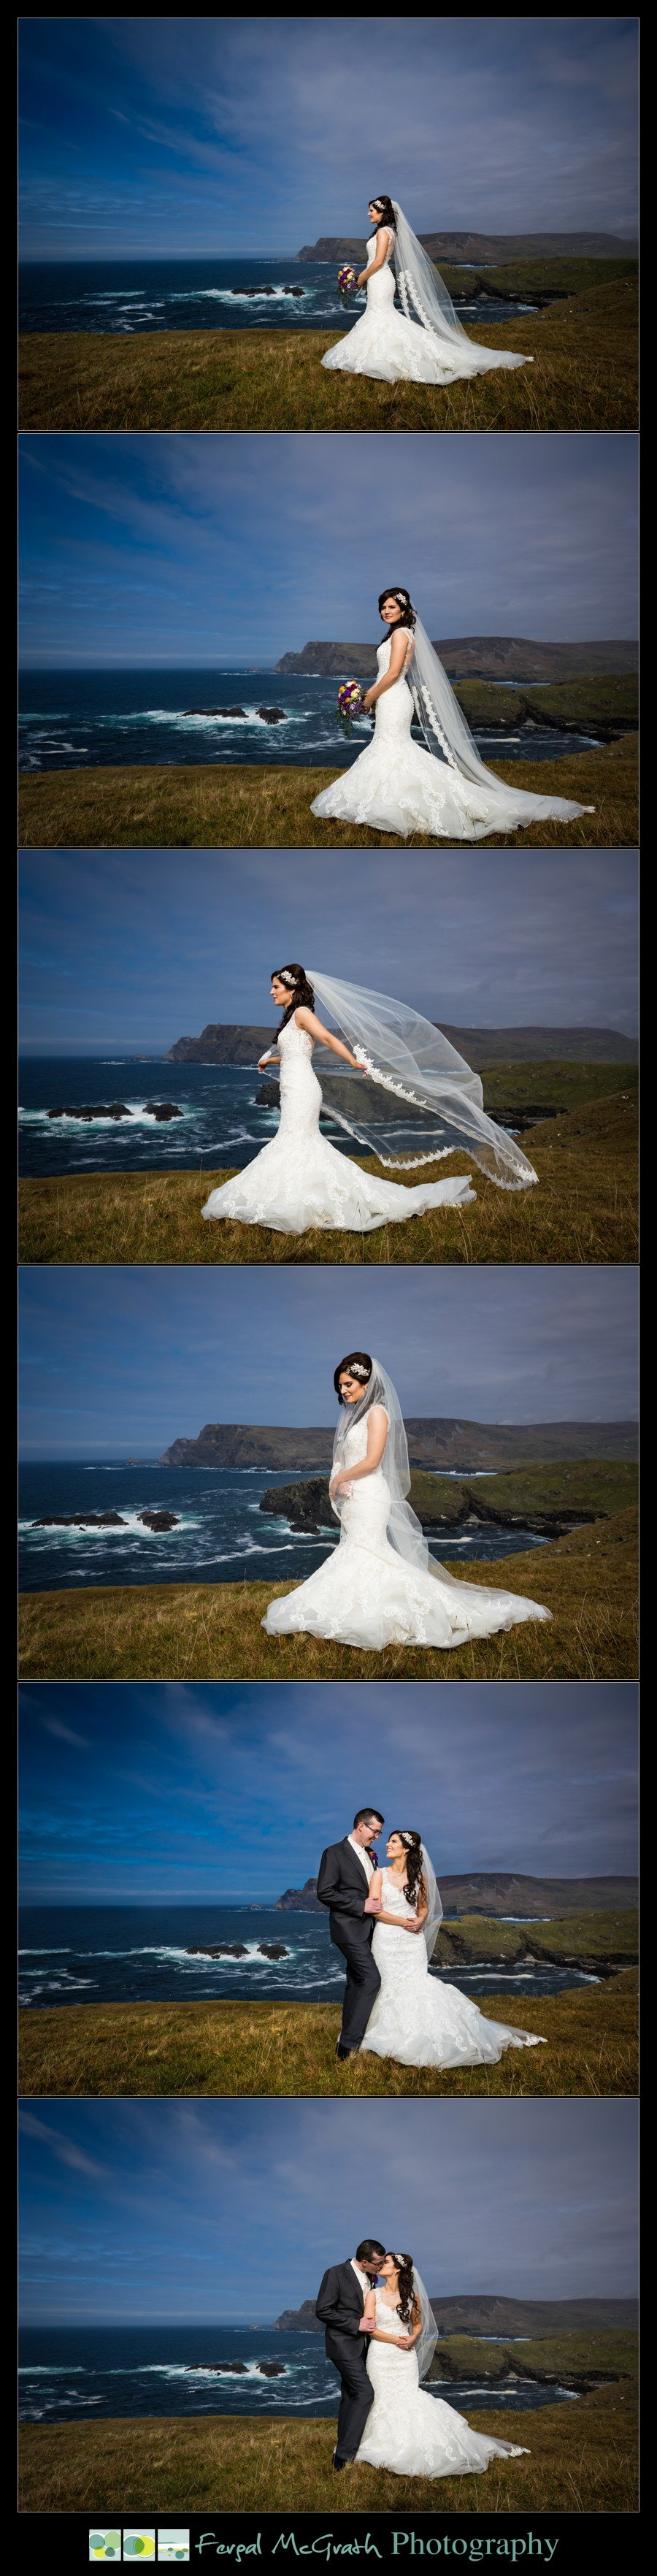 Glencolmcille wedding beautiful bride portraits